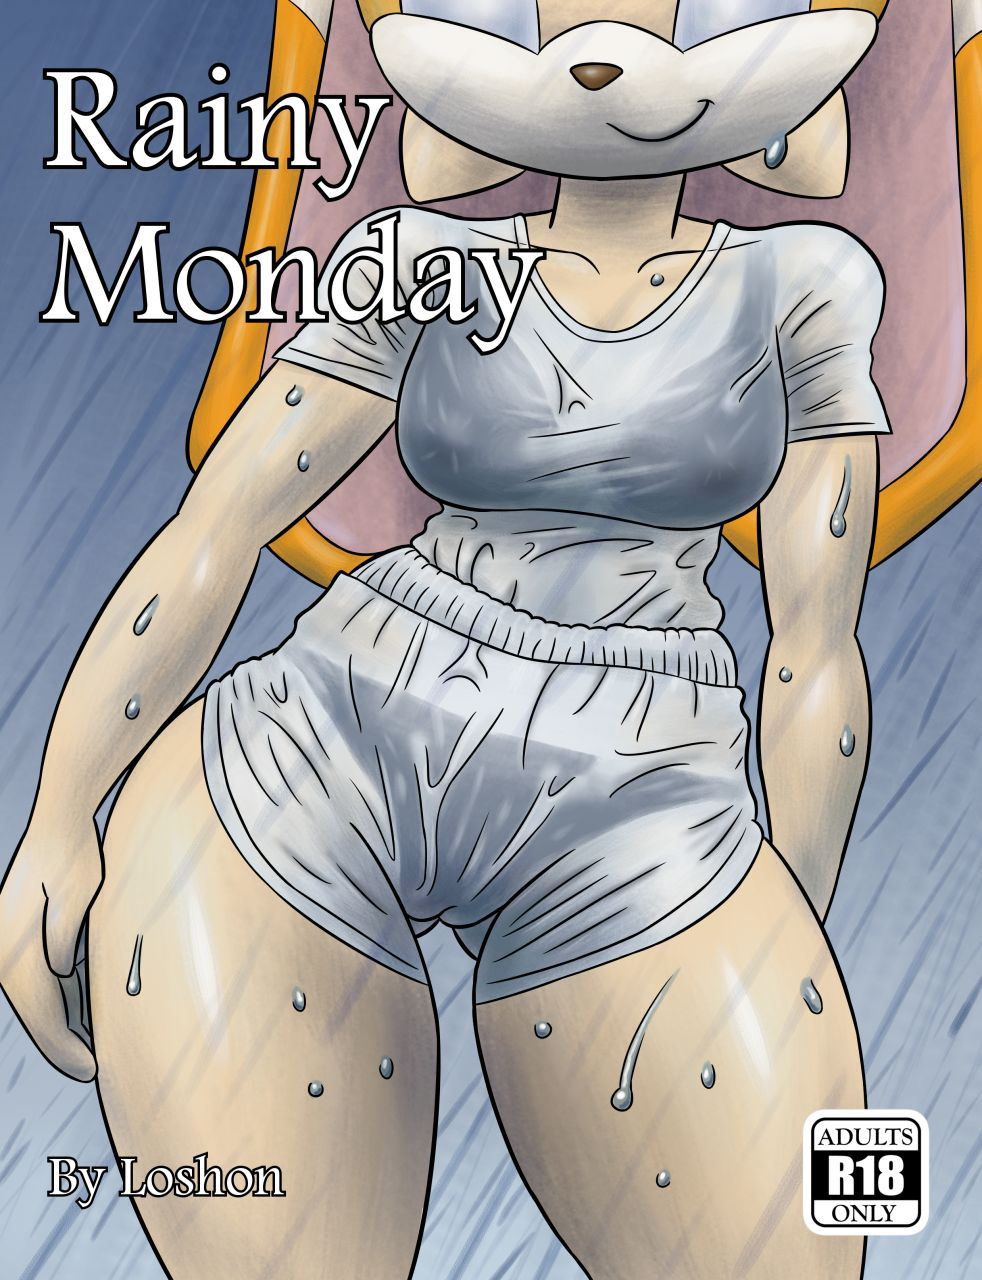 Sonic-the-hedgehog-Furry-Porn-Comics-For-Her-Tails-the-fox-Gentle-Sex-Make-Love-to-Cream-The-Rabbit-Creature-Cuties-blowjob-Hentai-Artist-loshon-Wet-Clothes-Female-Orgasm-Rainy-Monday